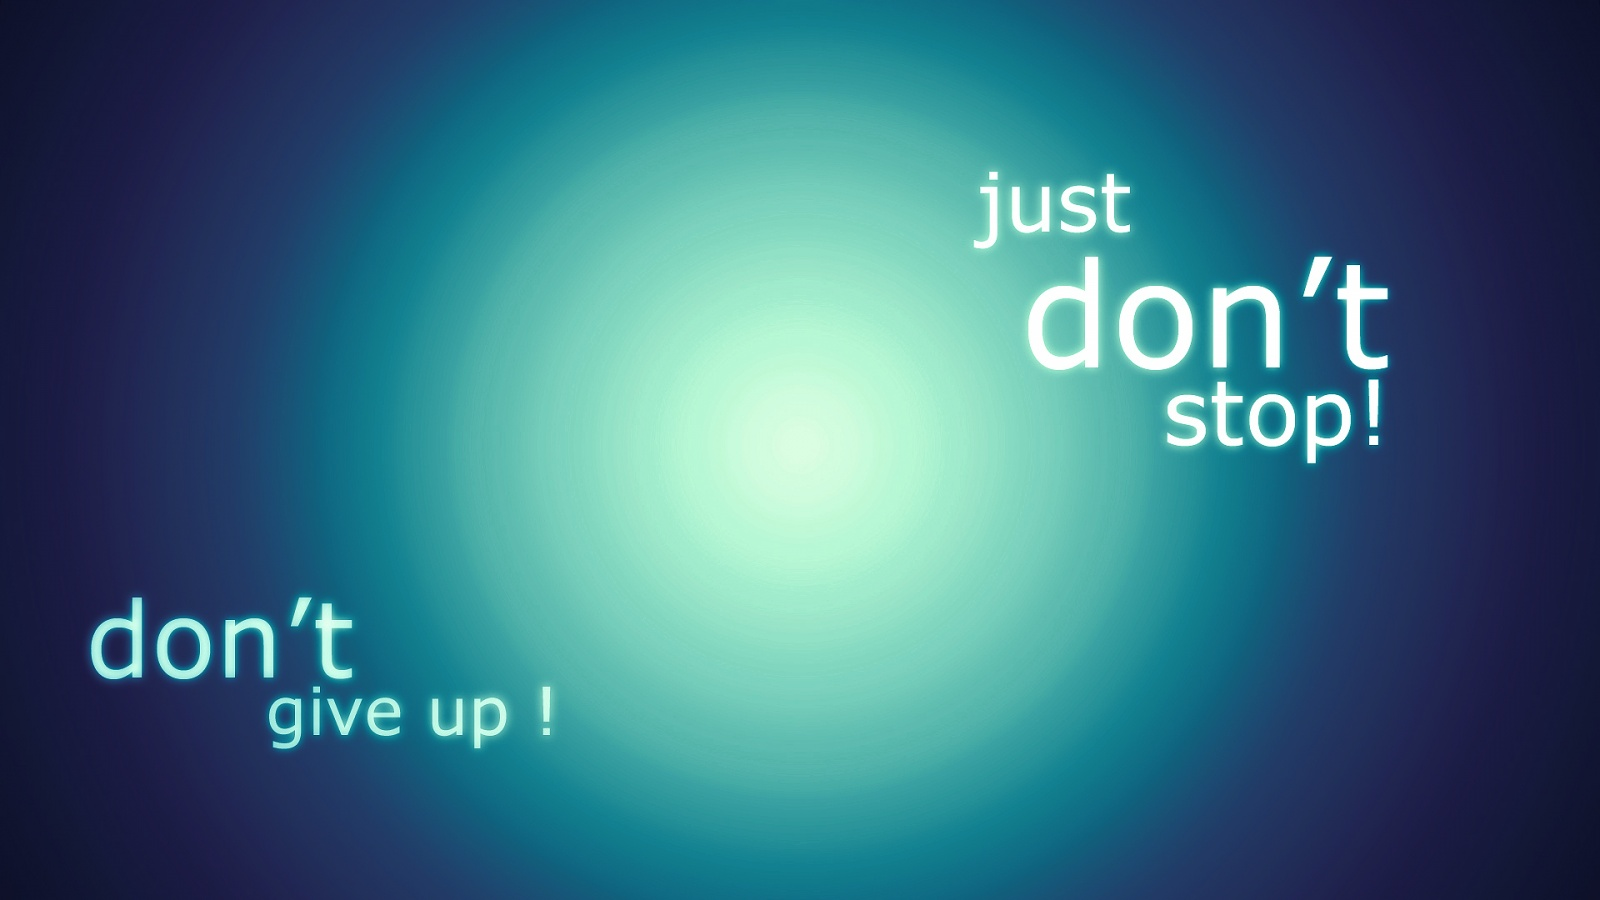 Dont stop dont give up